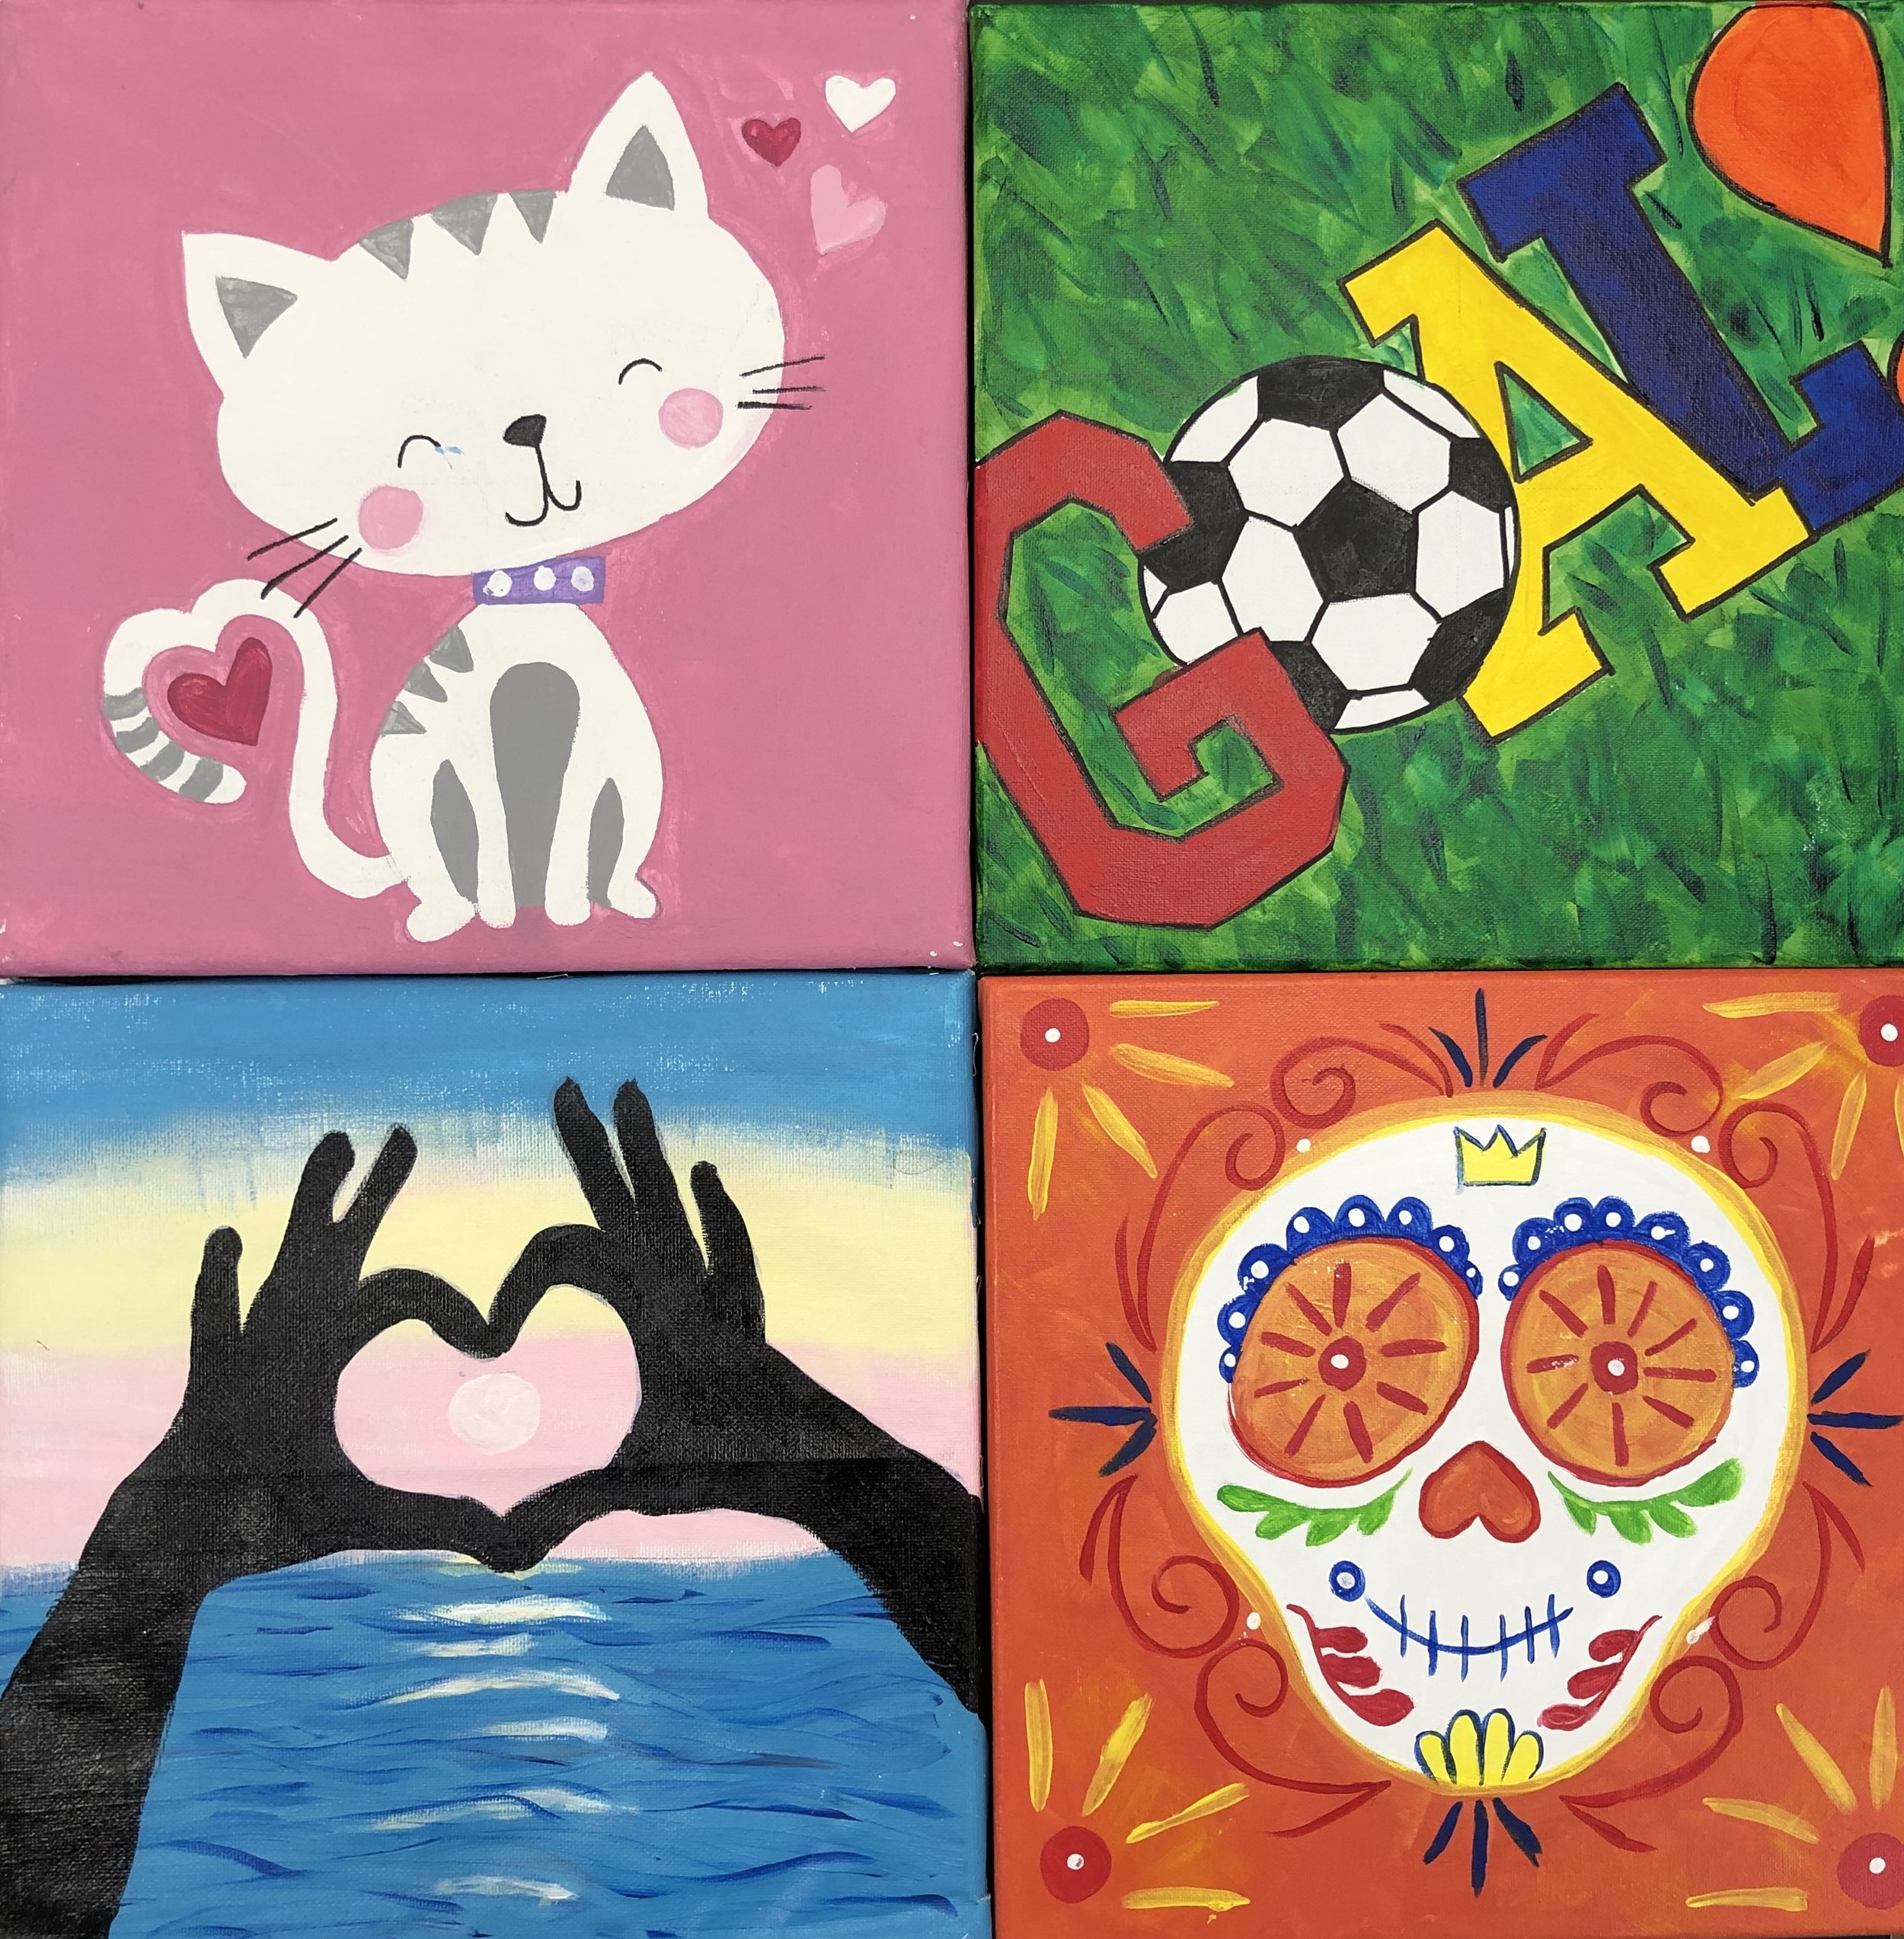 "Canvas Painting Party for 8 - Ages 8 and Up - Price includes party room for two hours, selection of canvas design, all paints, instruction, and a birthday plate for the guest of honor. $200 for kids canvas (12"" x 12"" designs), $240 for adult canvas (16"" x 20"" designs). Additional painters are $20 for kids and $25 for adults."